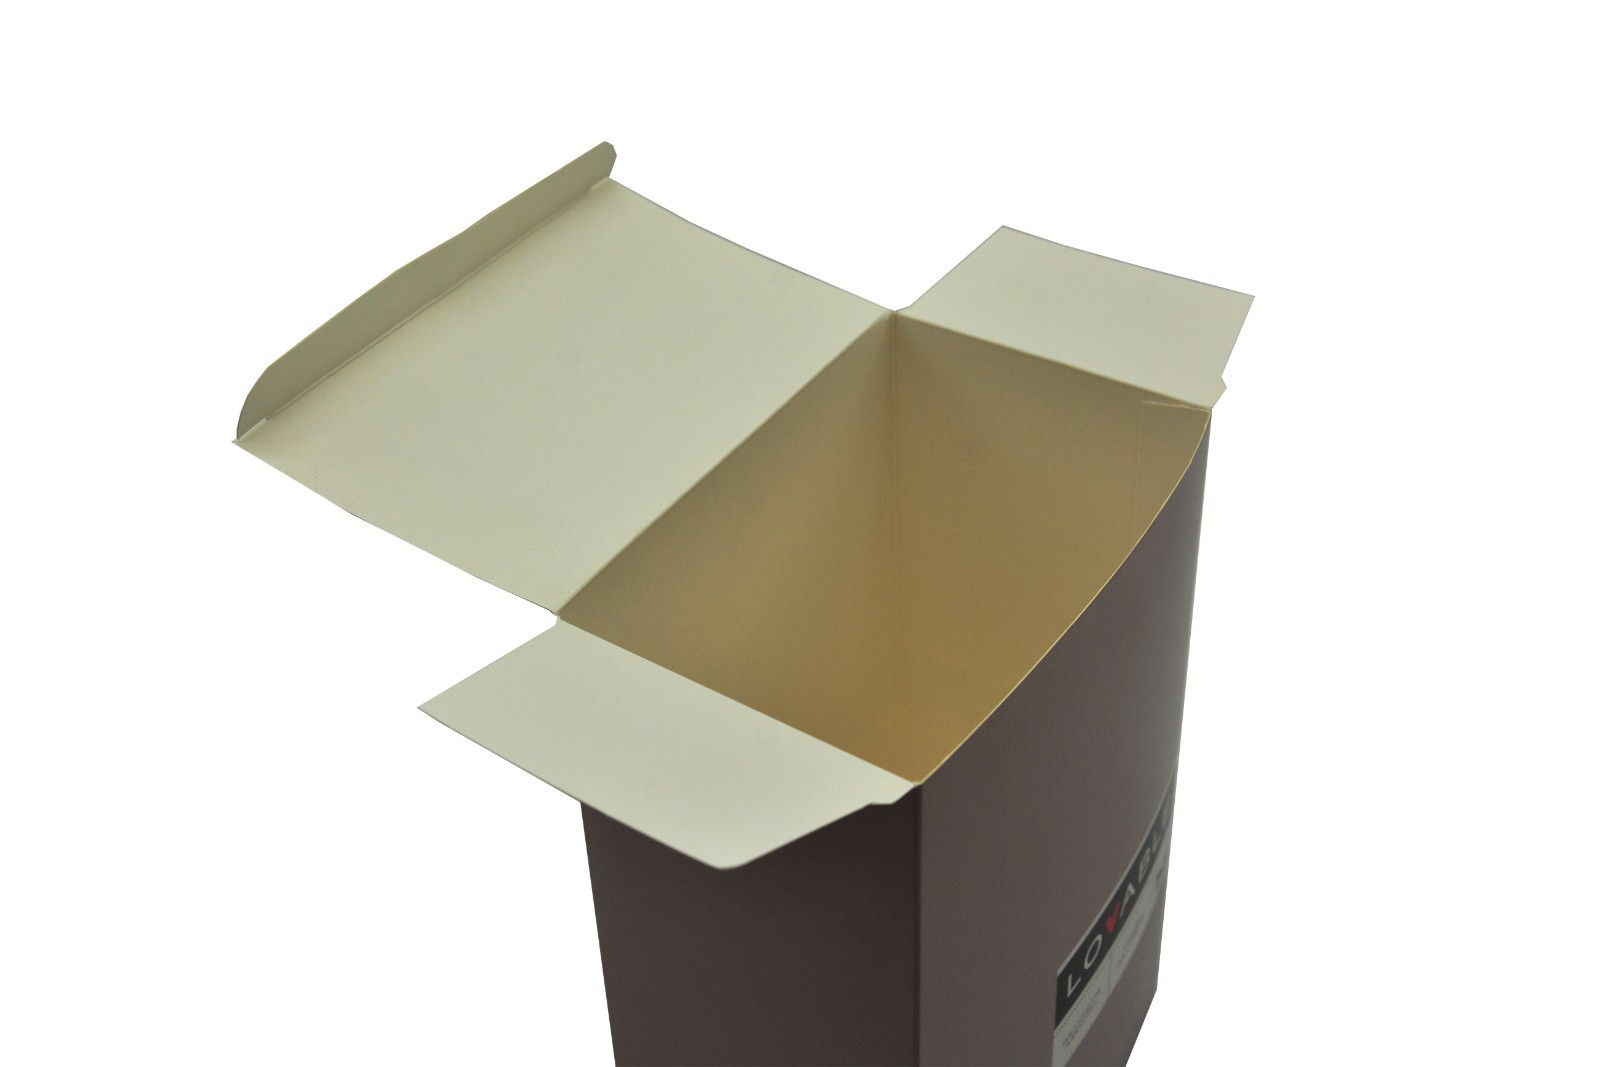 coloured packaging boxes underwear clothing base alcohol Mingyi Printing Brand luxury packaging boxes